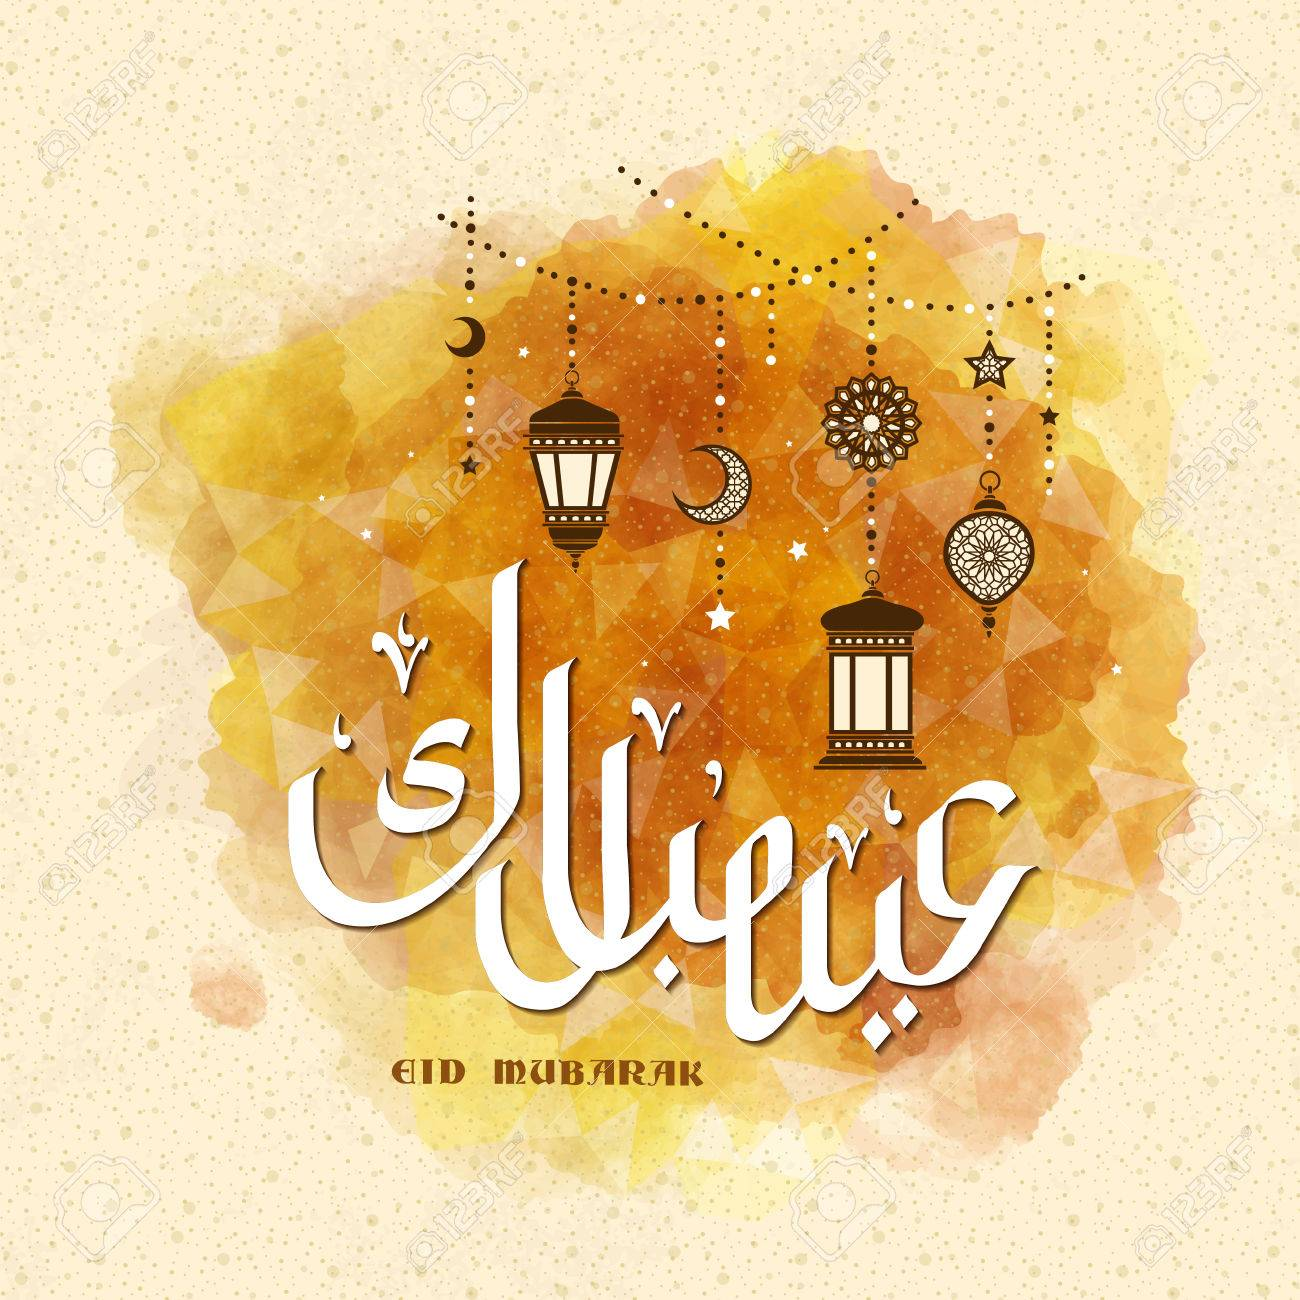 Eid Mubarak Calligraphy Design With Crescent Decorations And Royalty Free Cliparts Vectors And Stock Illustration Image 64064084